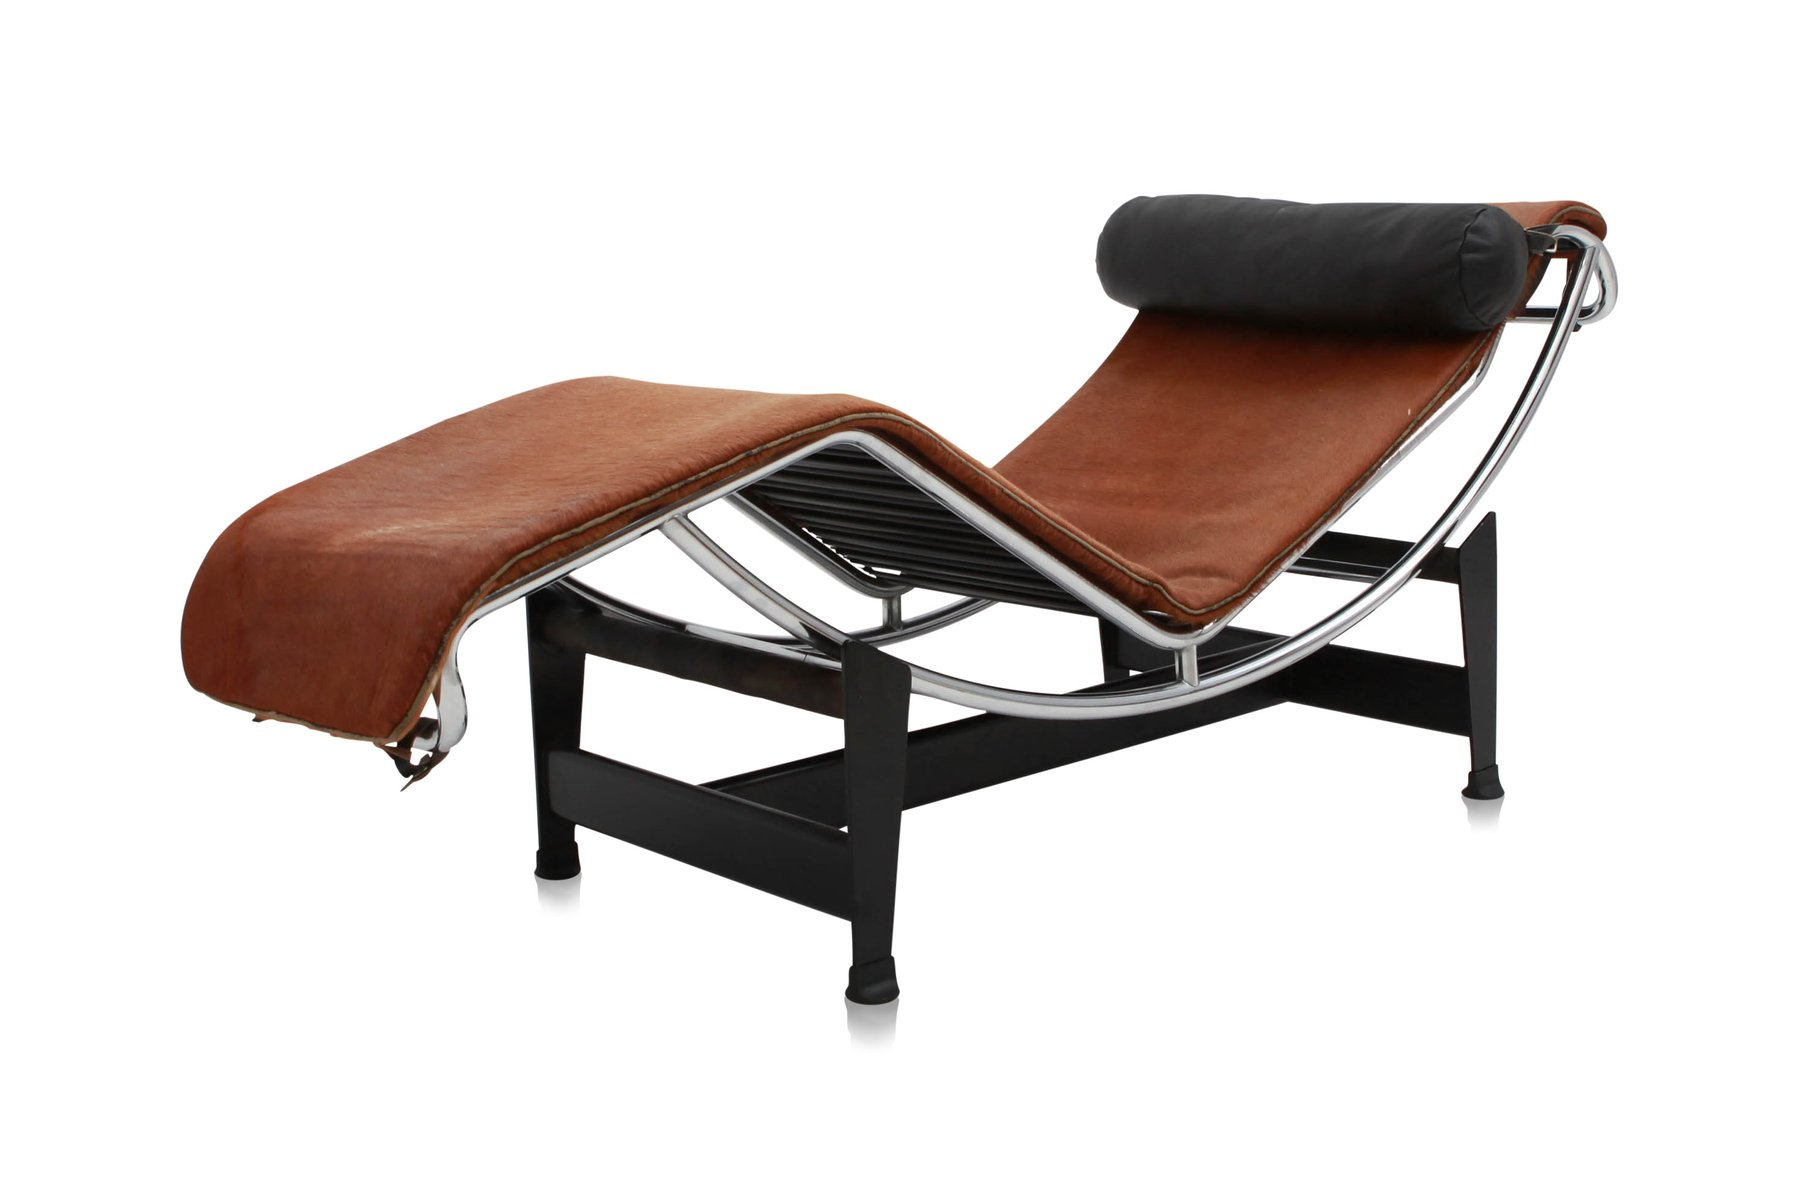 lc4 pony lounge chair by le corbusier for cassina 1960s for sale at pamono. Black Bedroom Furniture Sets. Home Design Ideas